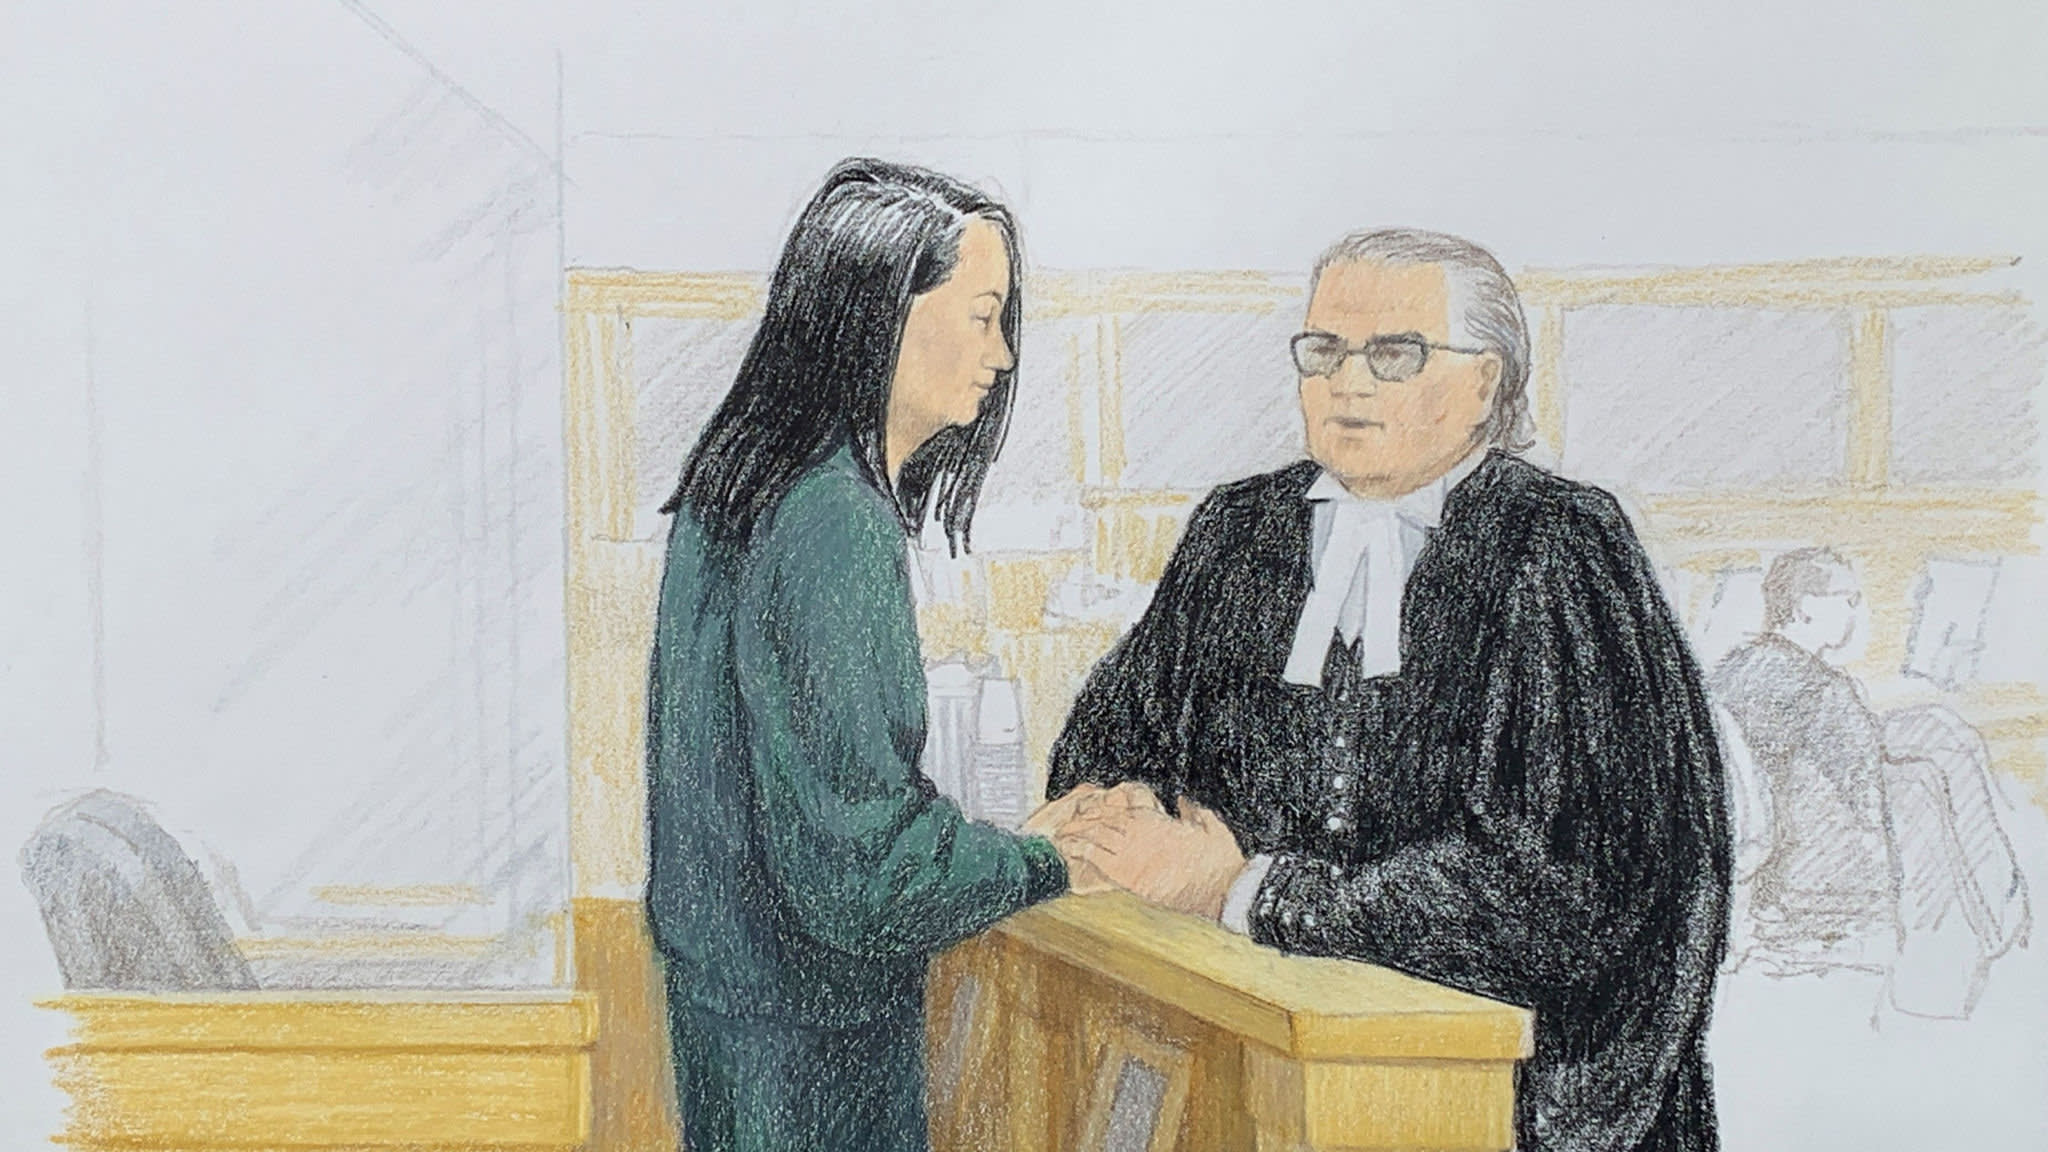 Huawei CFO secures C$10m bail